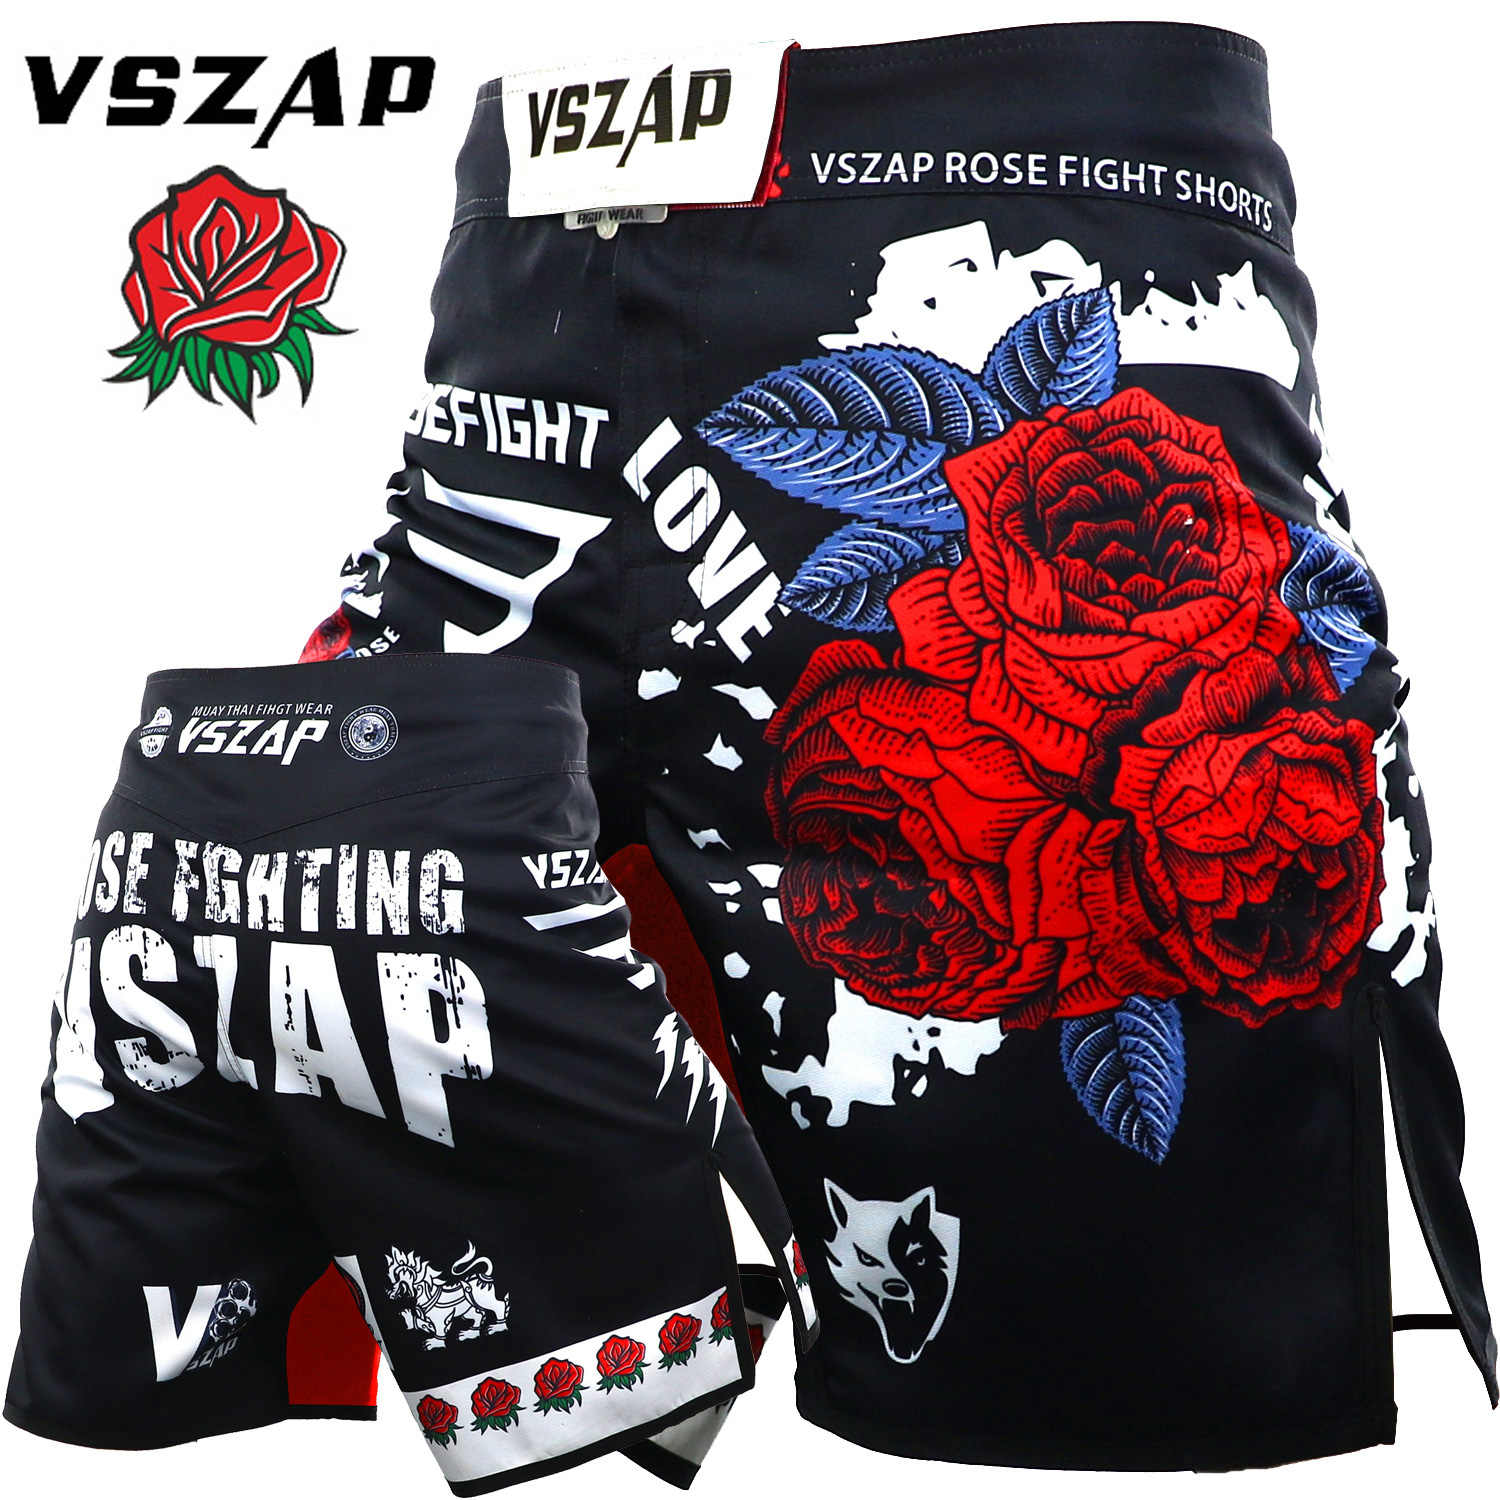 Vszap Rose Mma Shorts Kick Boksen Muay Thai Shorts Trunks Bjj Training Fitness Shorts Sanda Boxe Strijd Dragen Grappling Mma broek